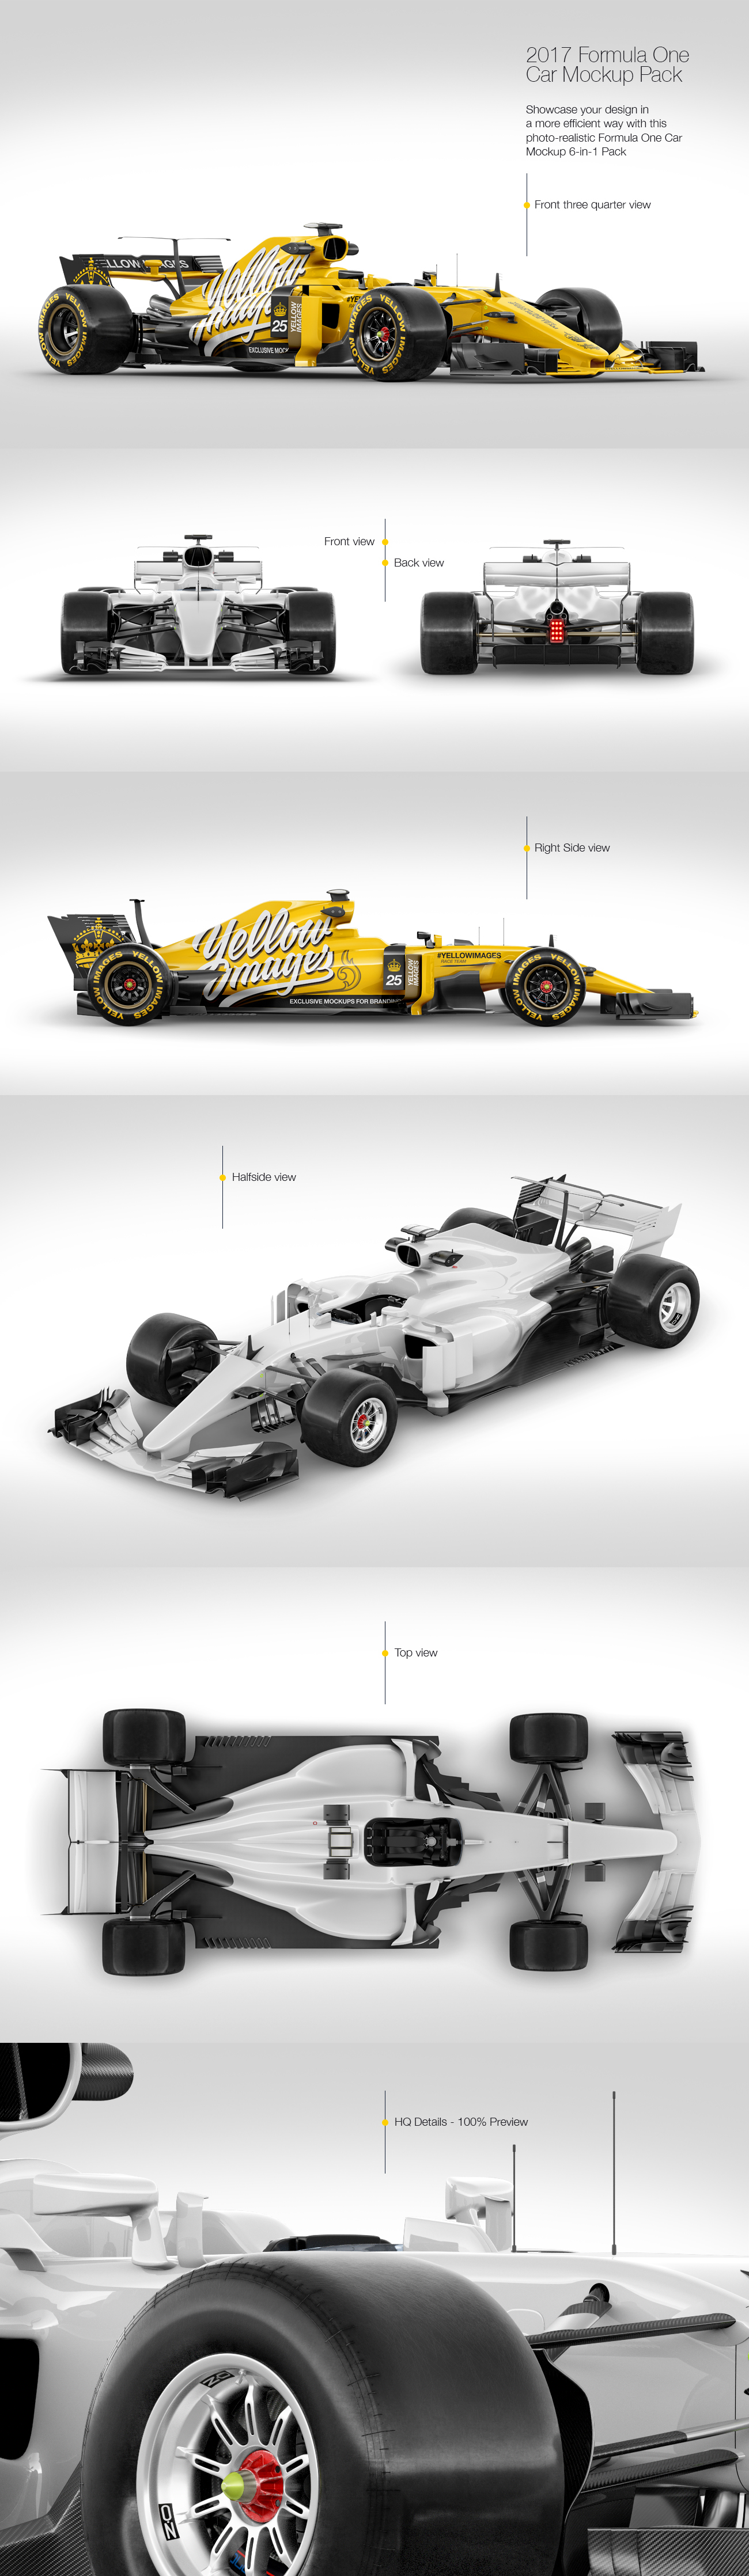 Download 2017 Formula 1 Car Mockup Pack In Handpicked Sets Of Vehicles On Yellow Images Creative Store PSD Mockup Templates